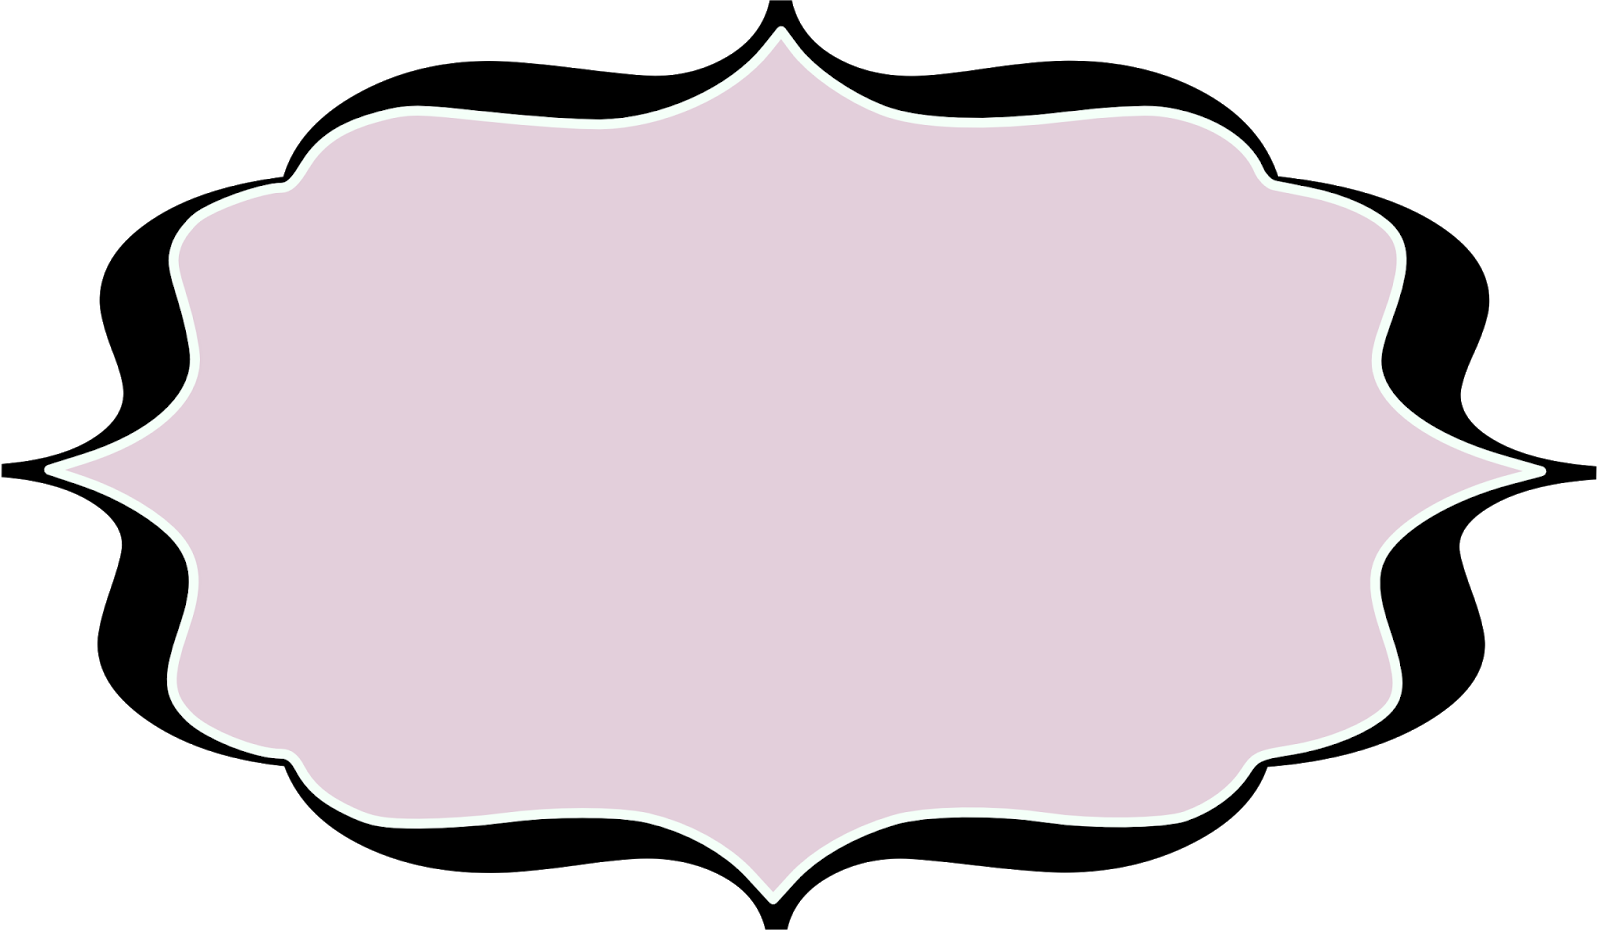 Fancy Label Templates Png - More information - rank-one.info